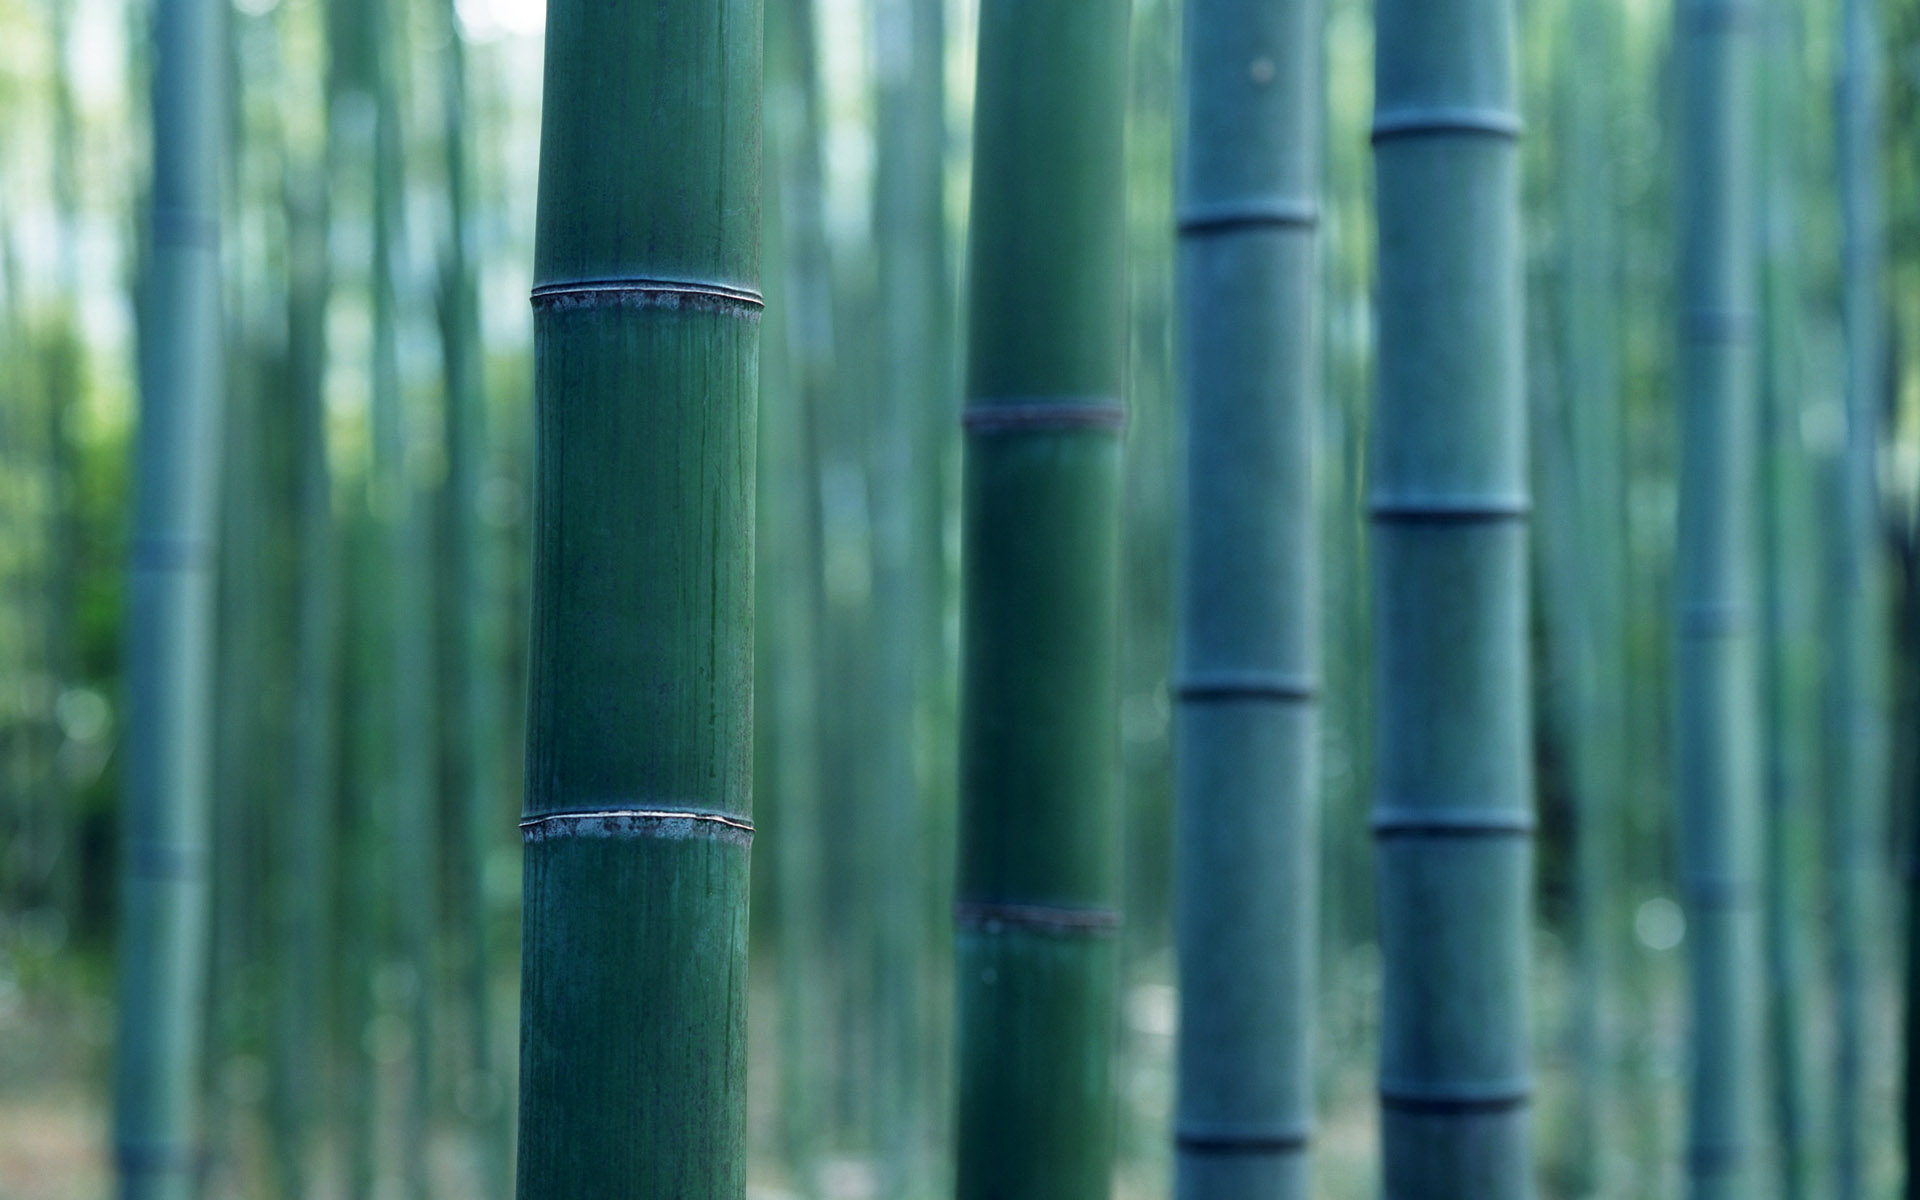 1920x1200 Lush Bamboo Forest Photography 1920x1200 NO.4